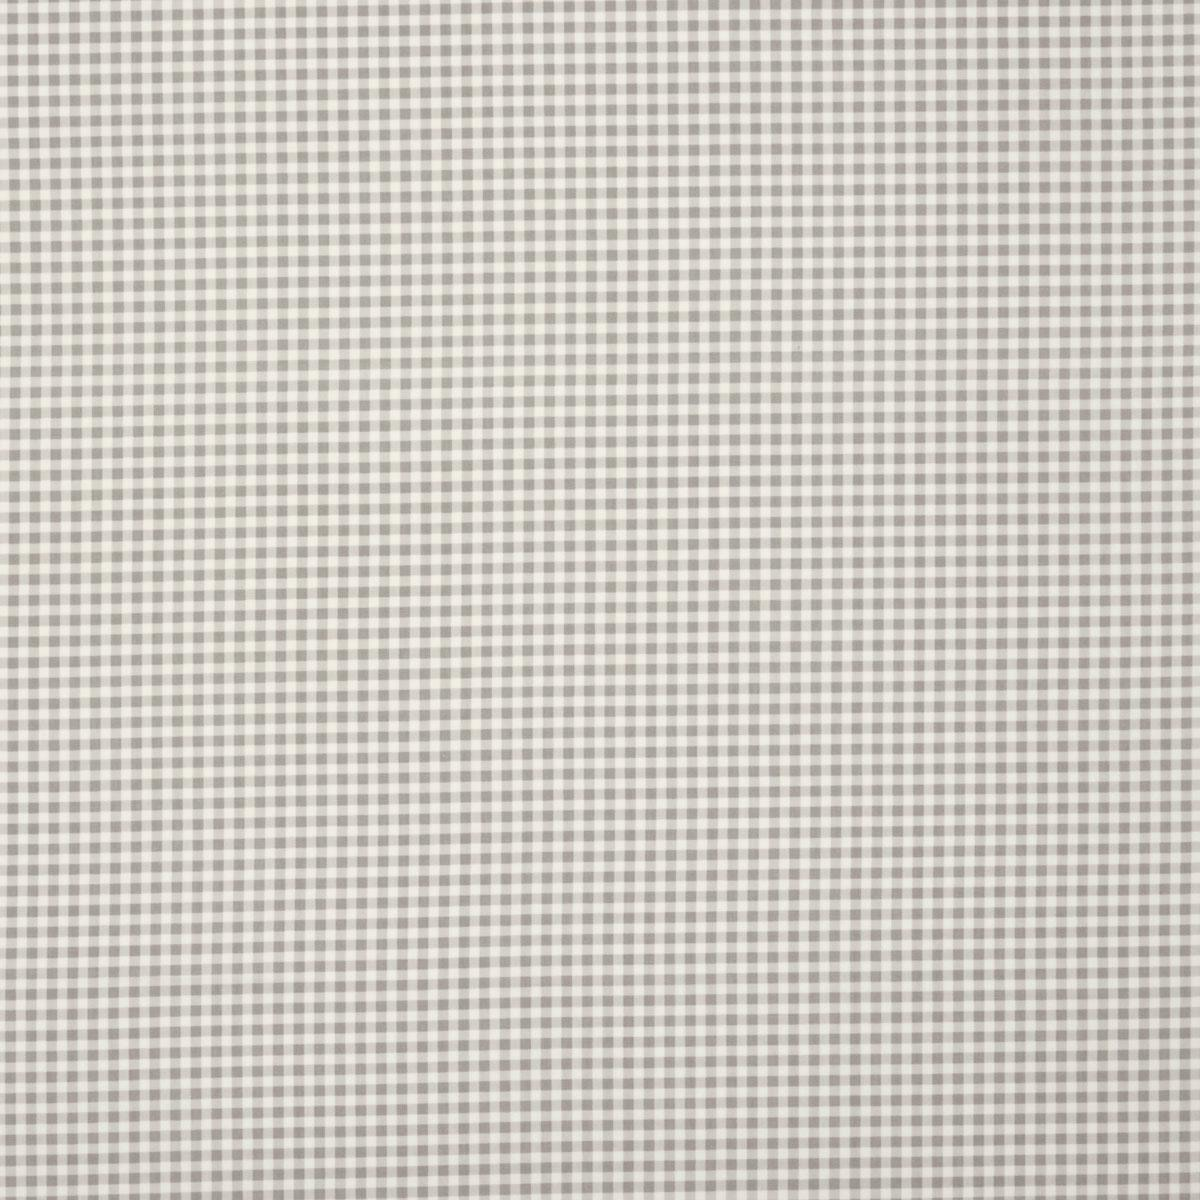 Gingham Curtain Fabric - Grey - Terrys Fabrics UK